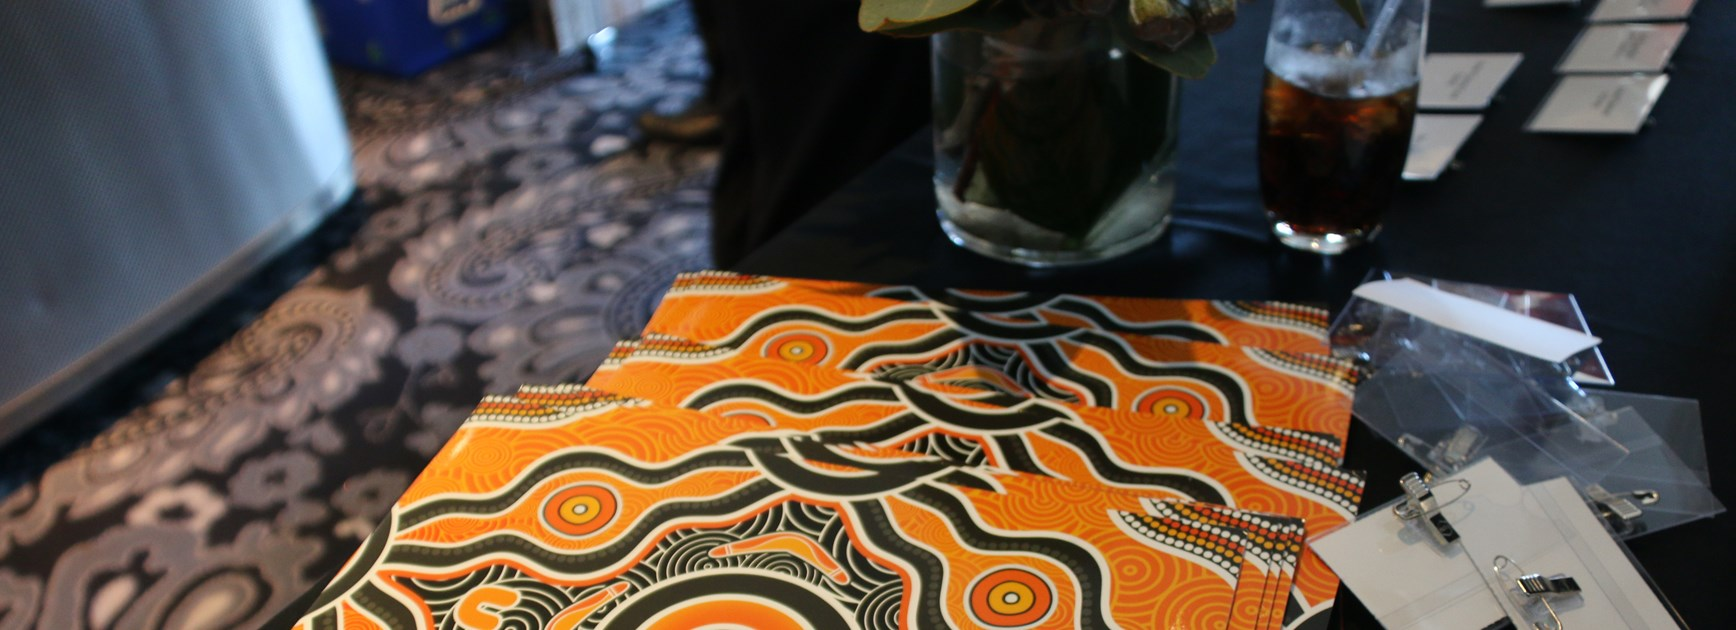 Wests Tigers committed to Reconciliation Action Plan